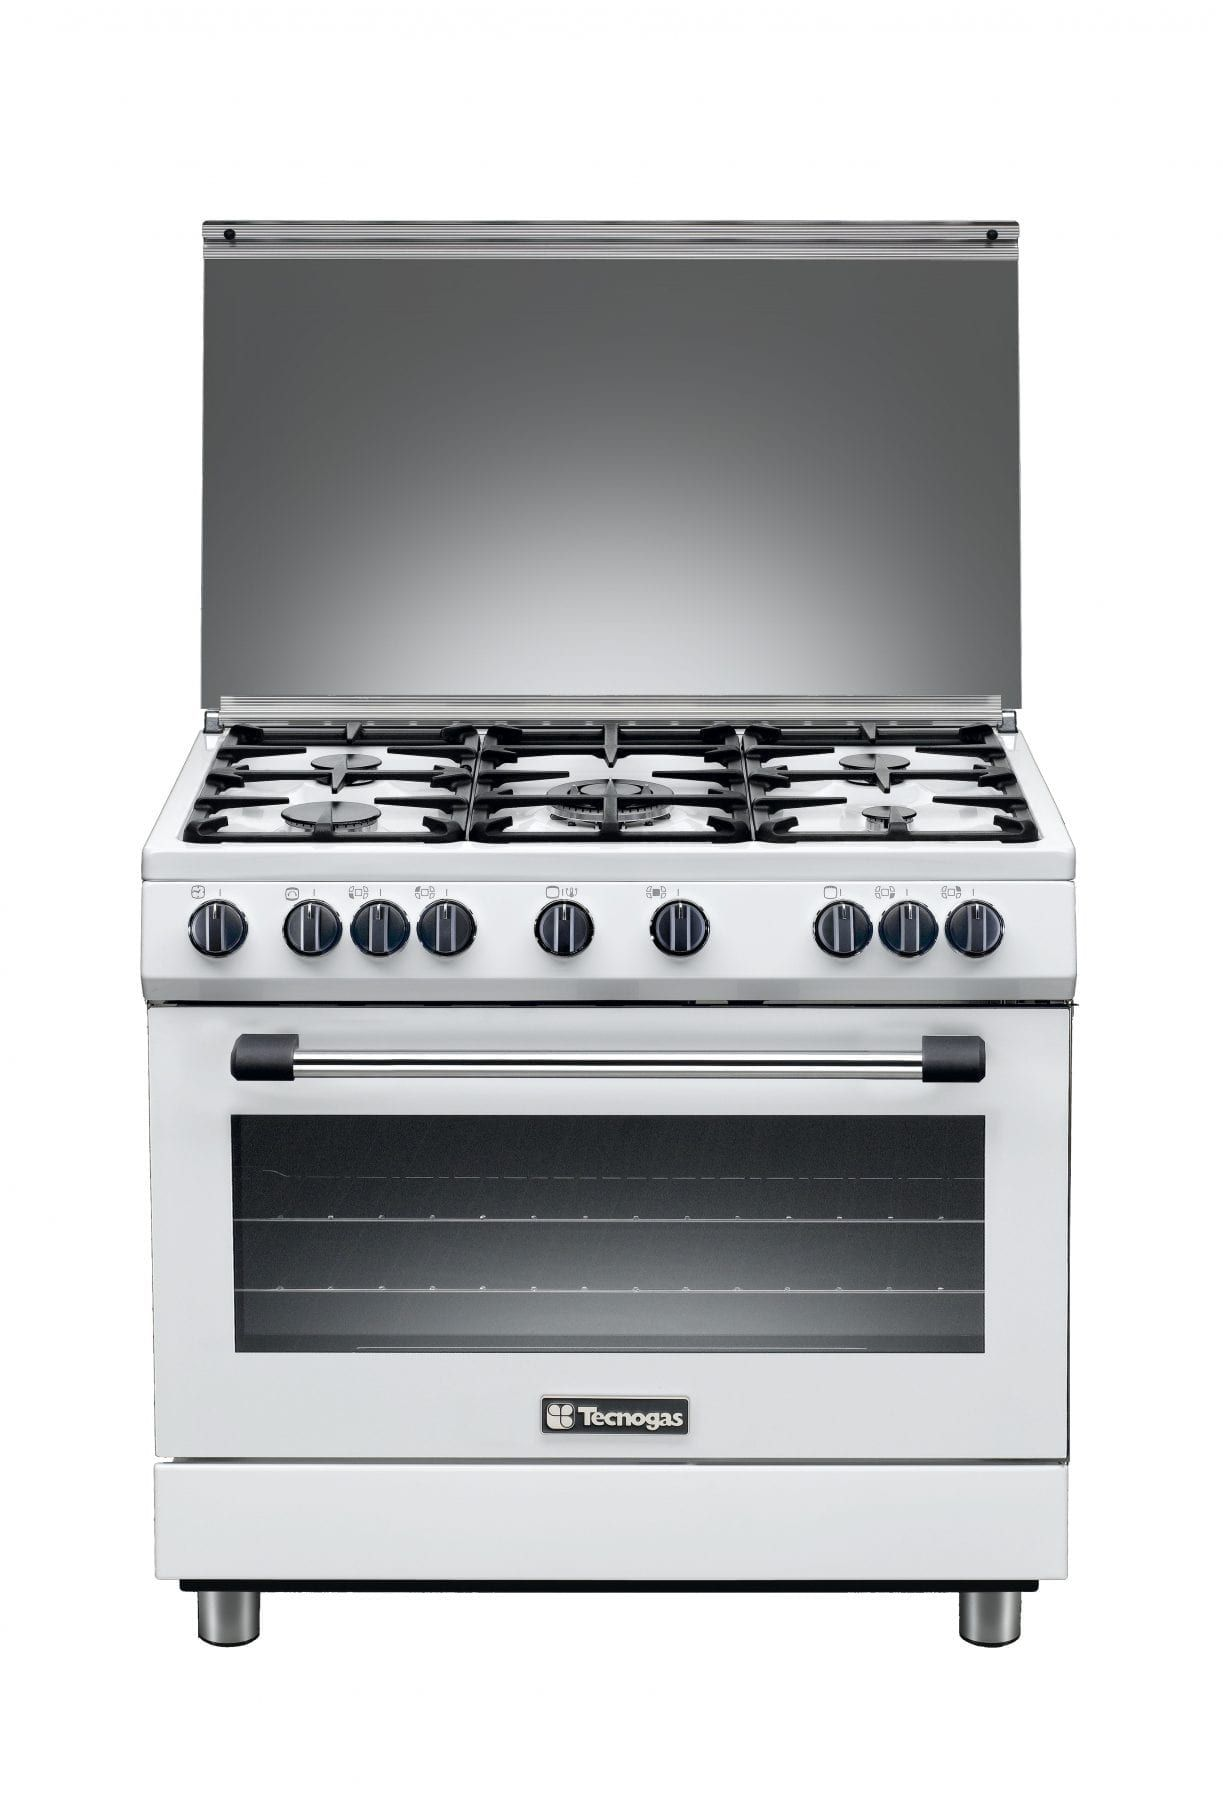 Tecnogas Cooker 90cm Copper Burners Stainless Steel T965X / N3965GX